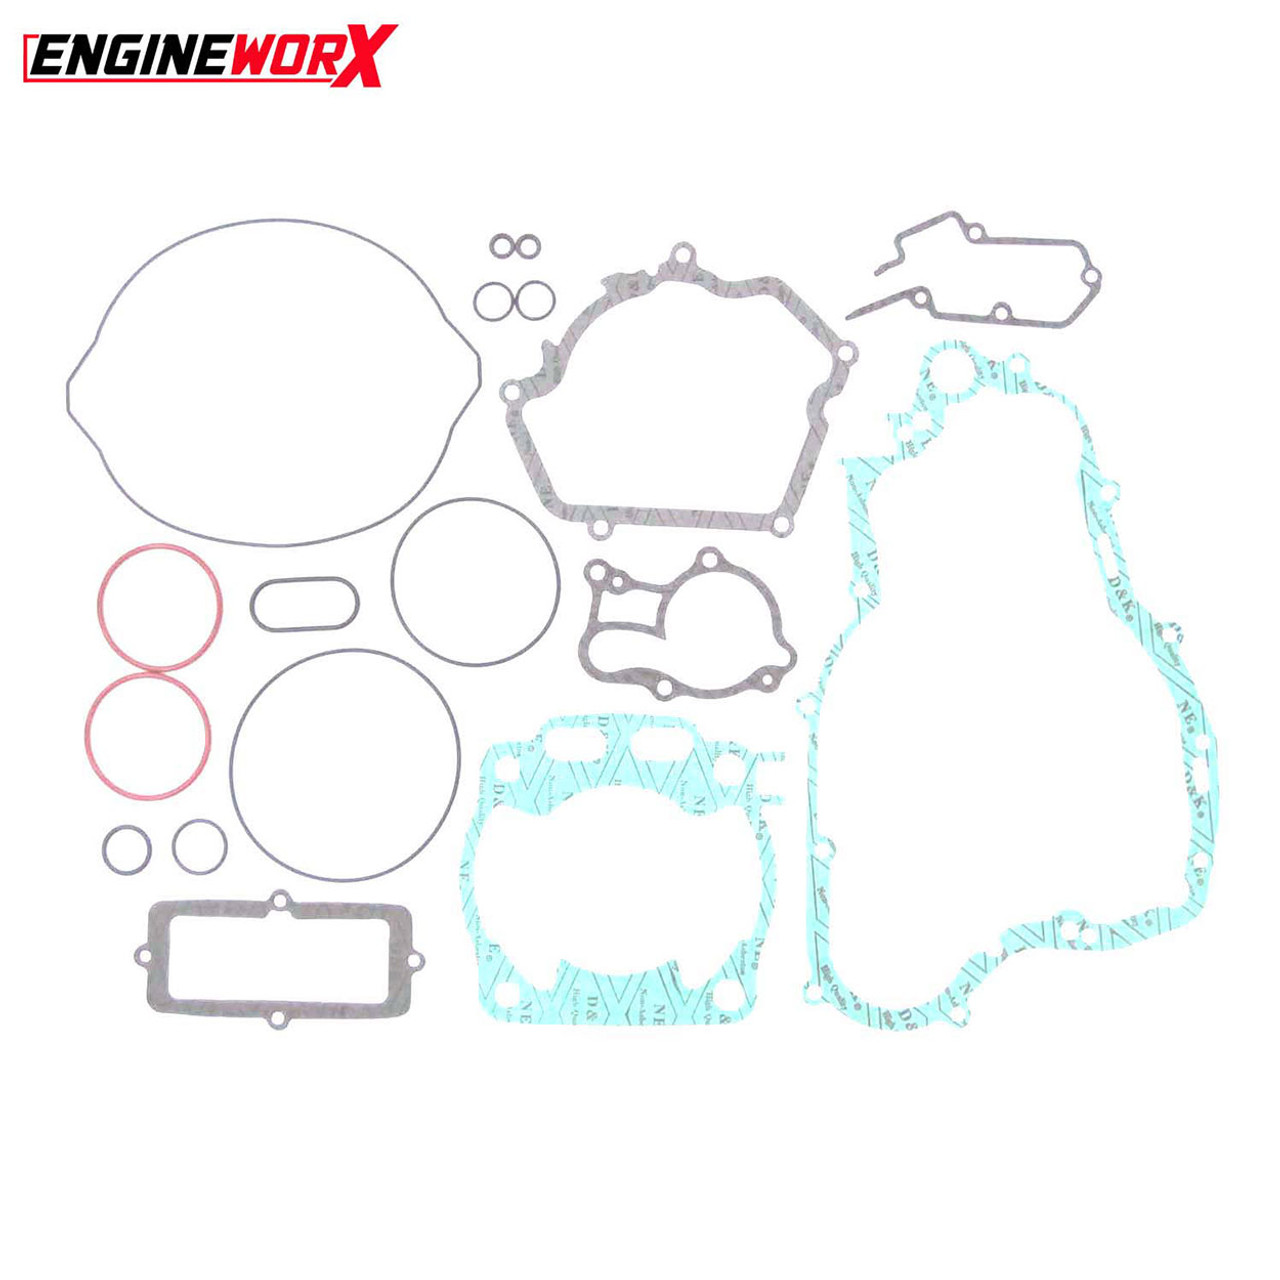 Engineworx Gasket Kit (Full Set) Yamaha YZ250 99-00